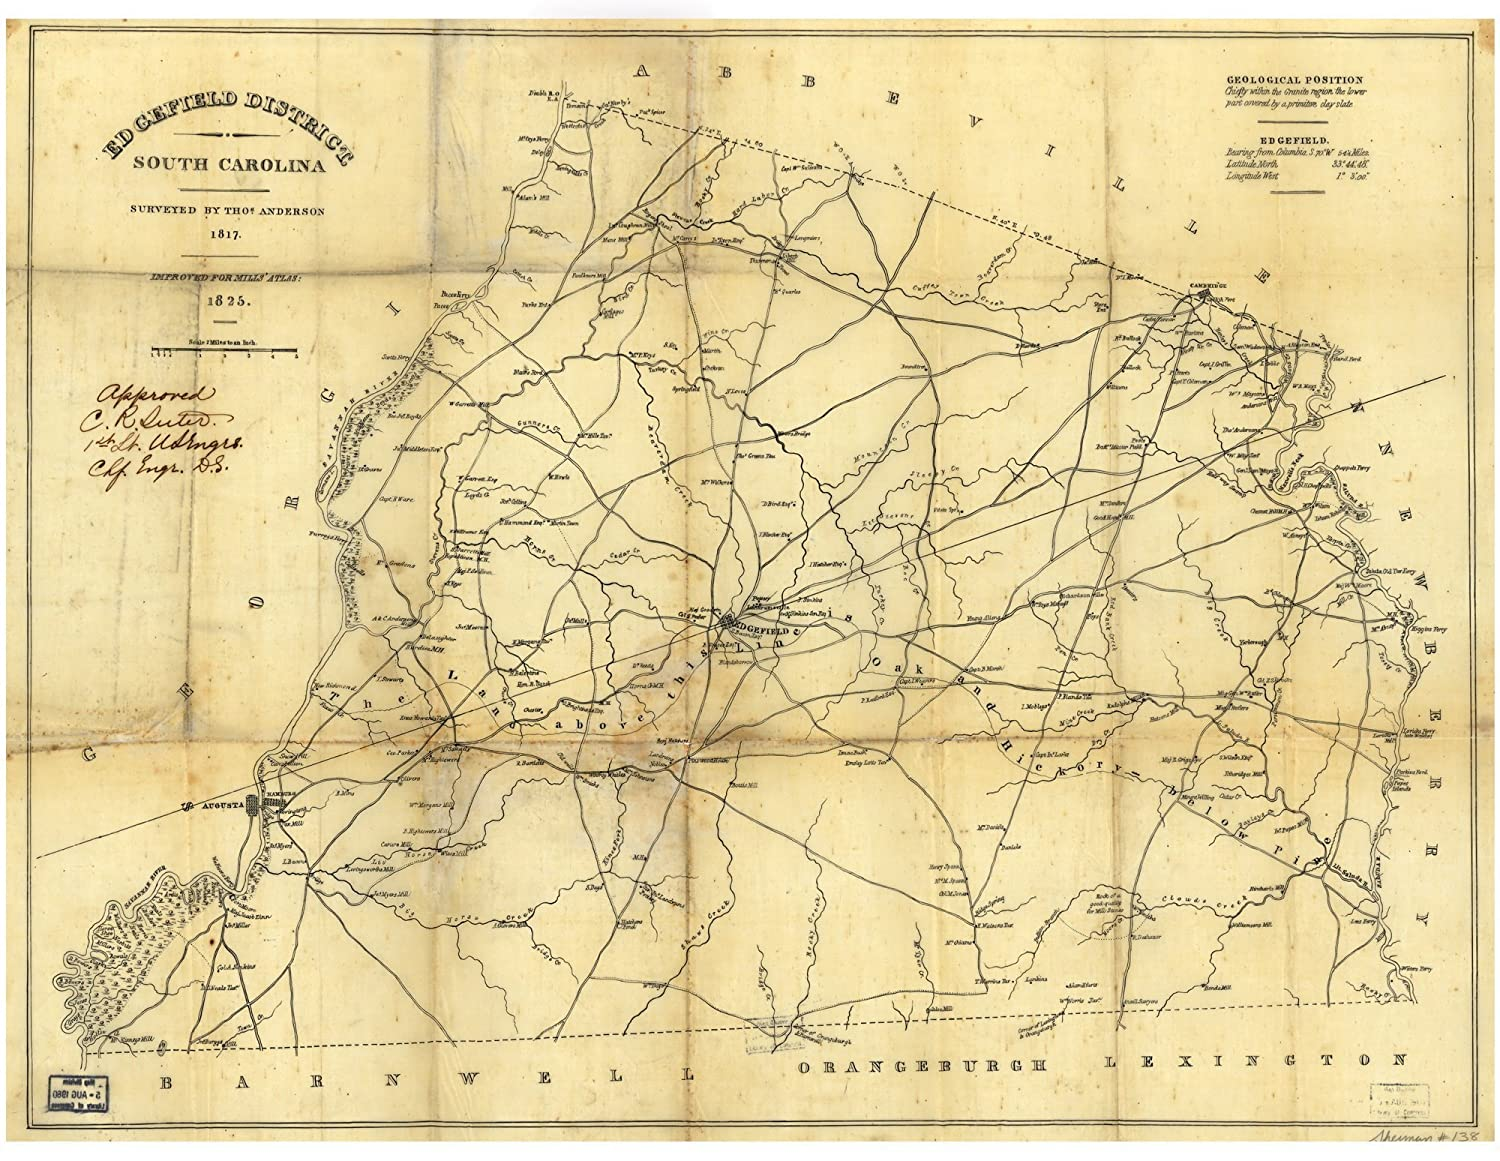 Edgefield District South Carolina map c1825 18x24